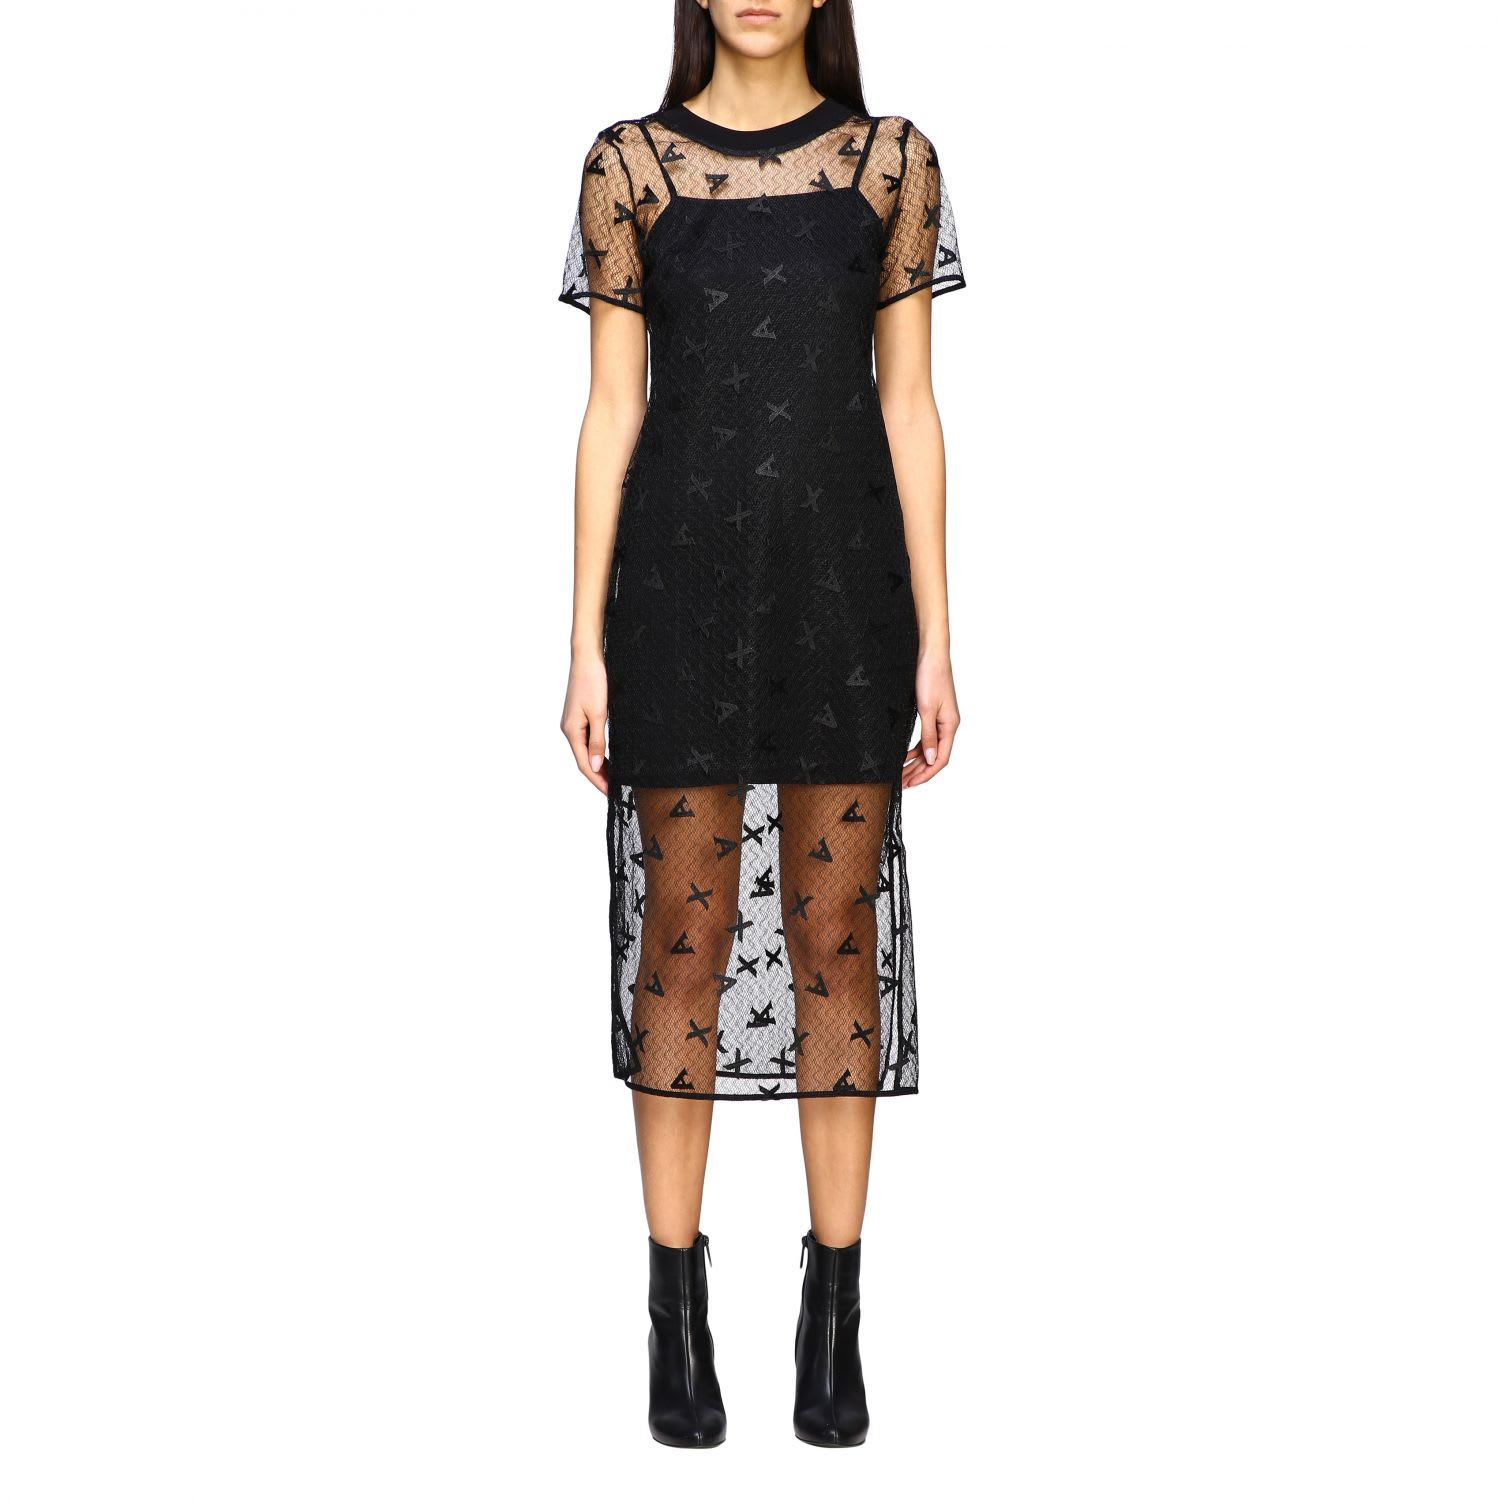 Buy Armani Exchange Dress Armani Exchange Dress In Branded Tulle online, shop Armani Collezioni with free shipping